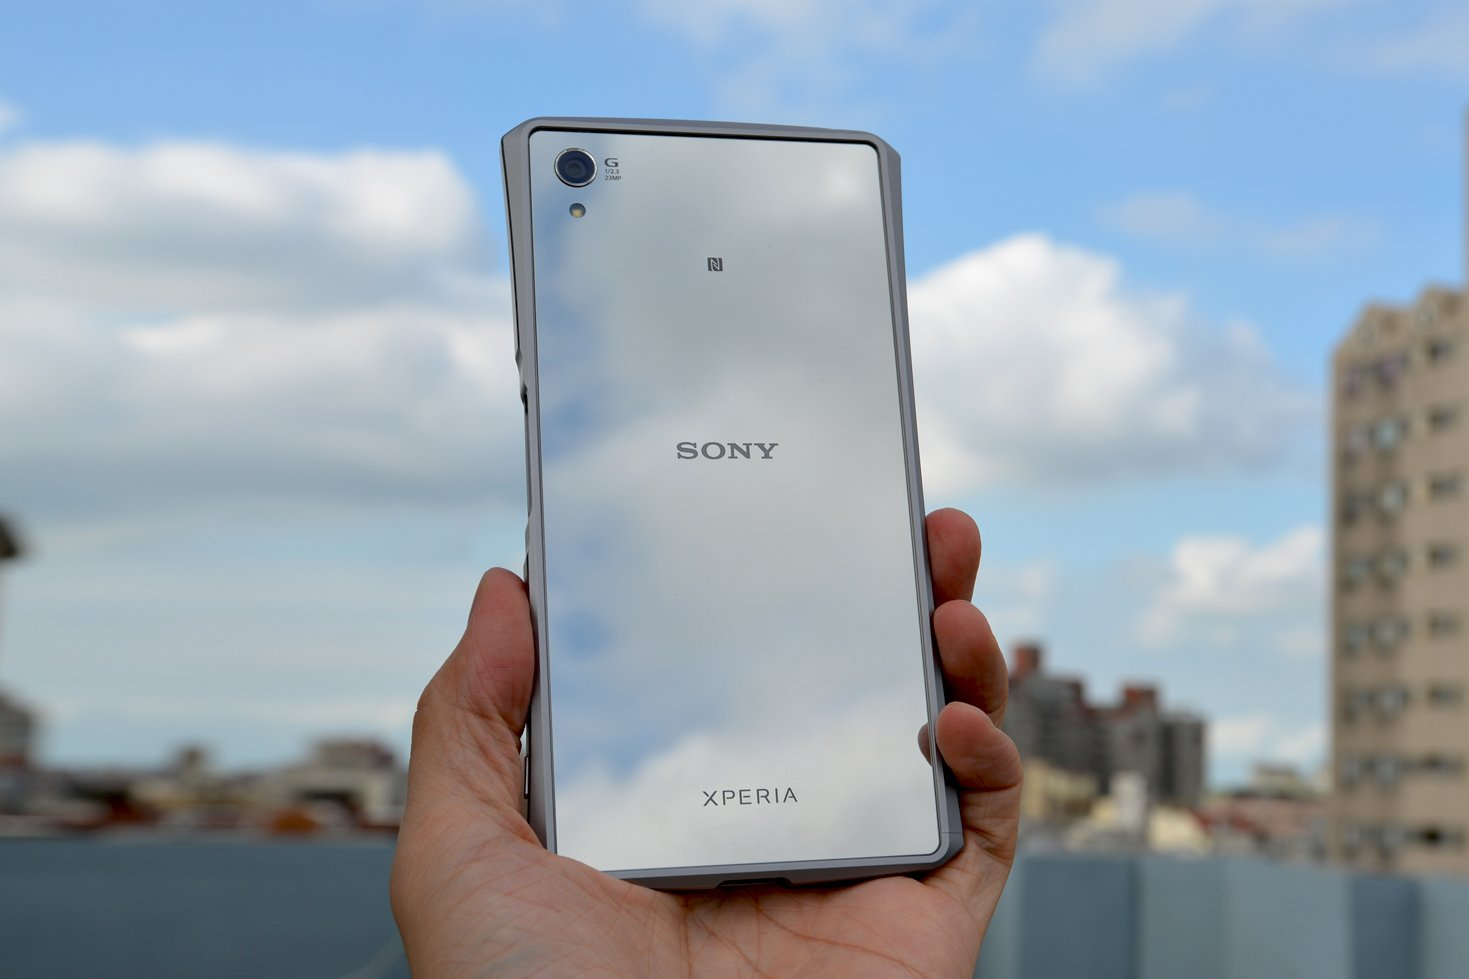 how to change the notifying sound on xperia z5 premium